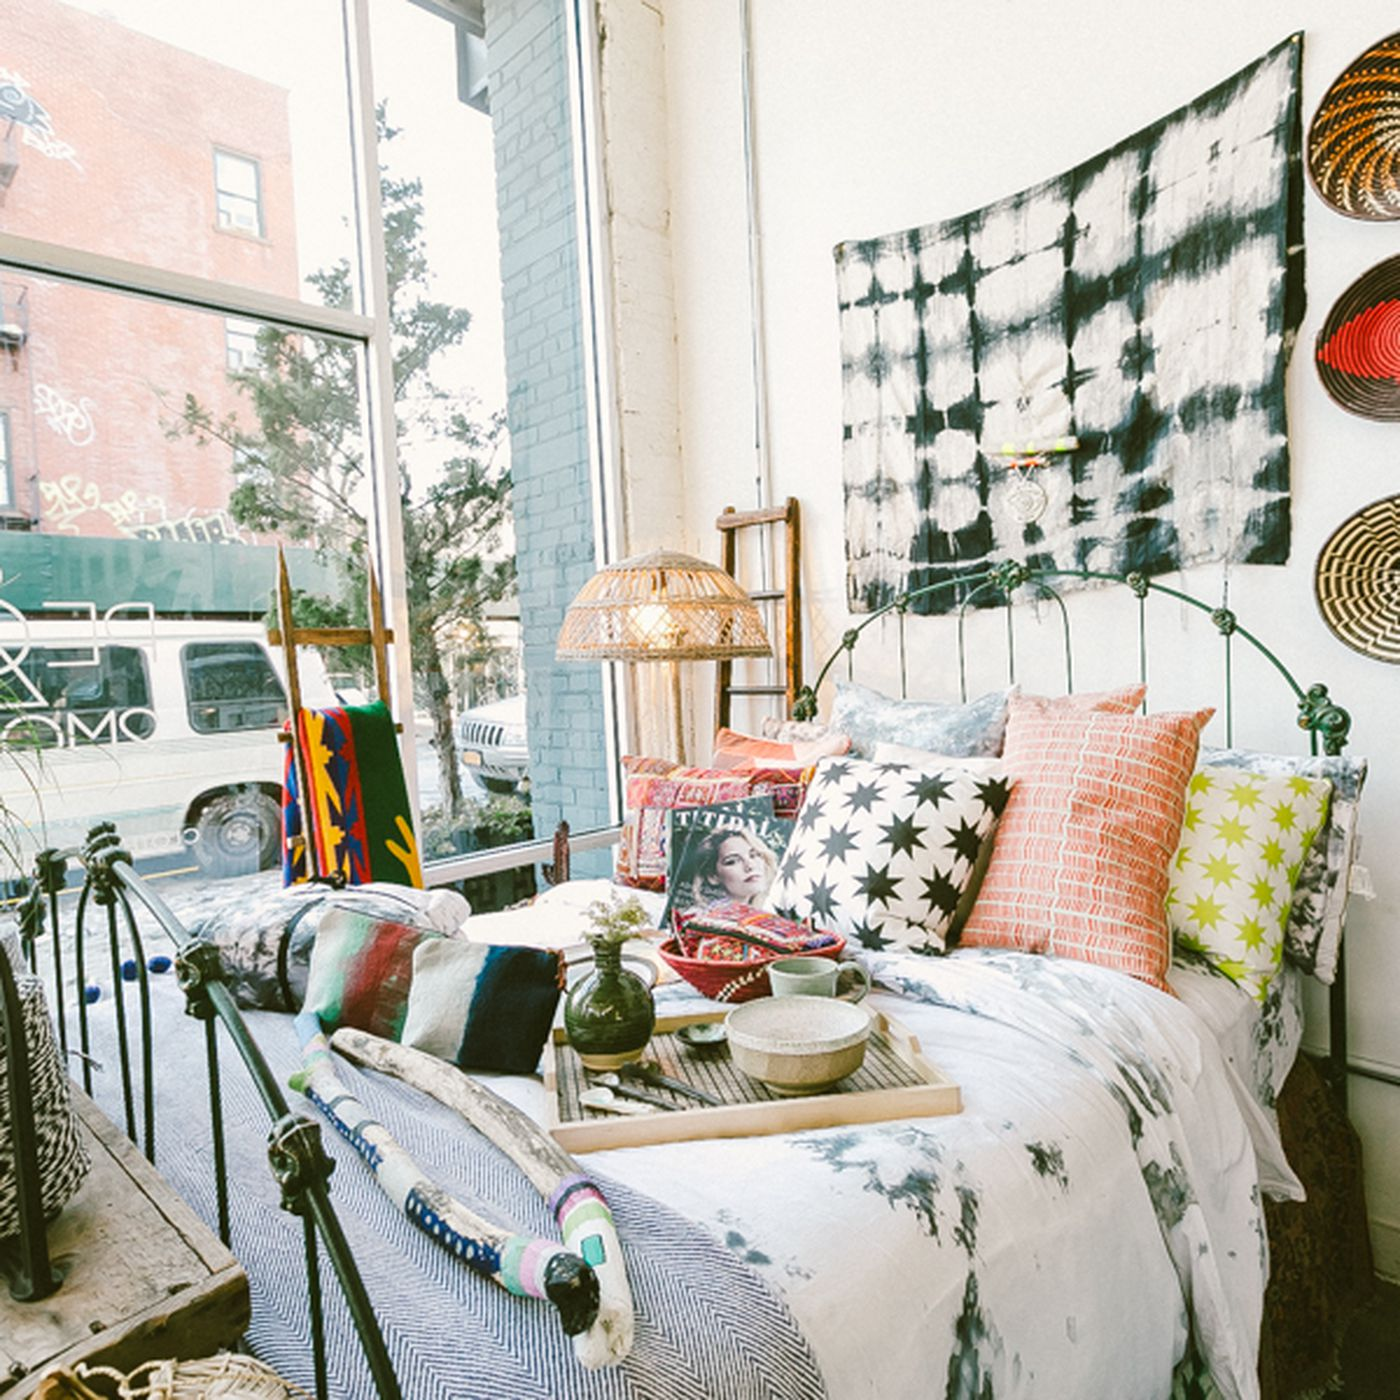 Ready Set Hibernate Where To Buy Cozy Bedding In Nyc Racked Ny